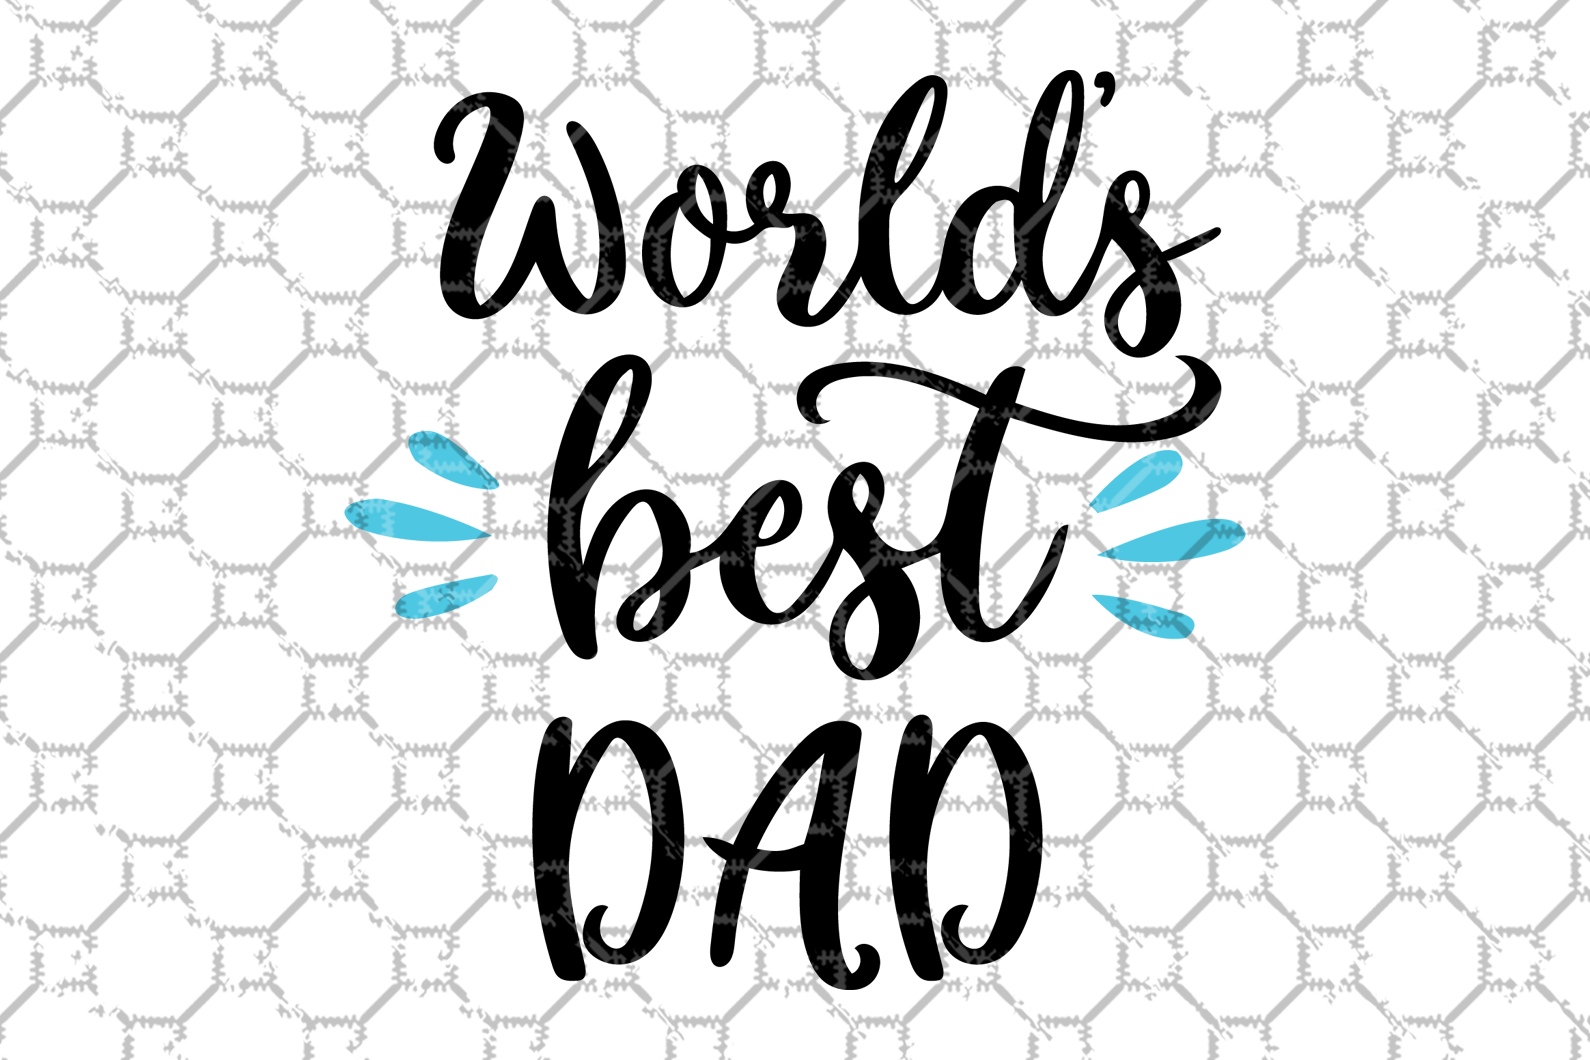 Worlds best dad, dad svg, papa svg, father svg, daddy svg, poppop svg Files For Silhouette, Files For Cricut, SVG, DXF, EPS, PNG, Instant Download